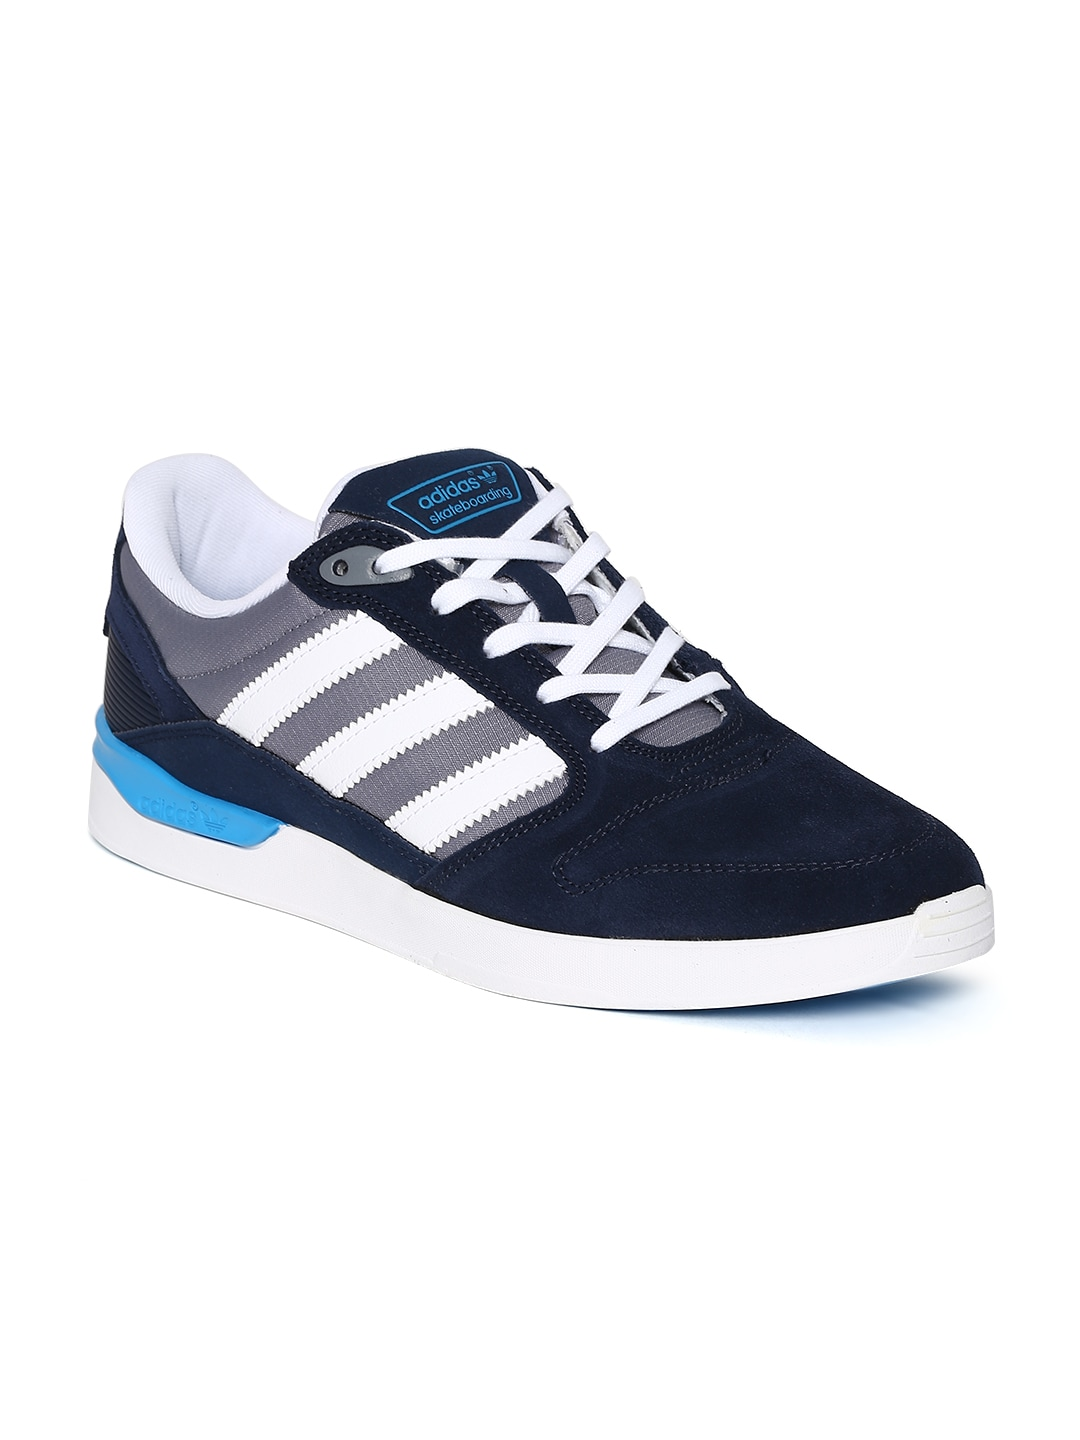 adidas originals skateboarding shoes india